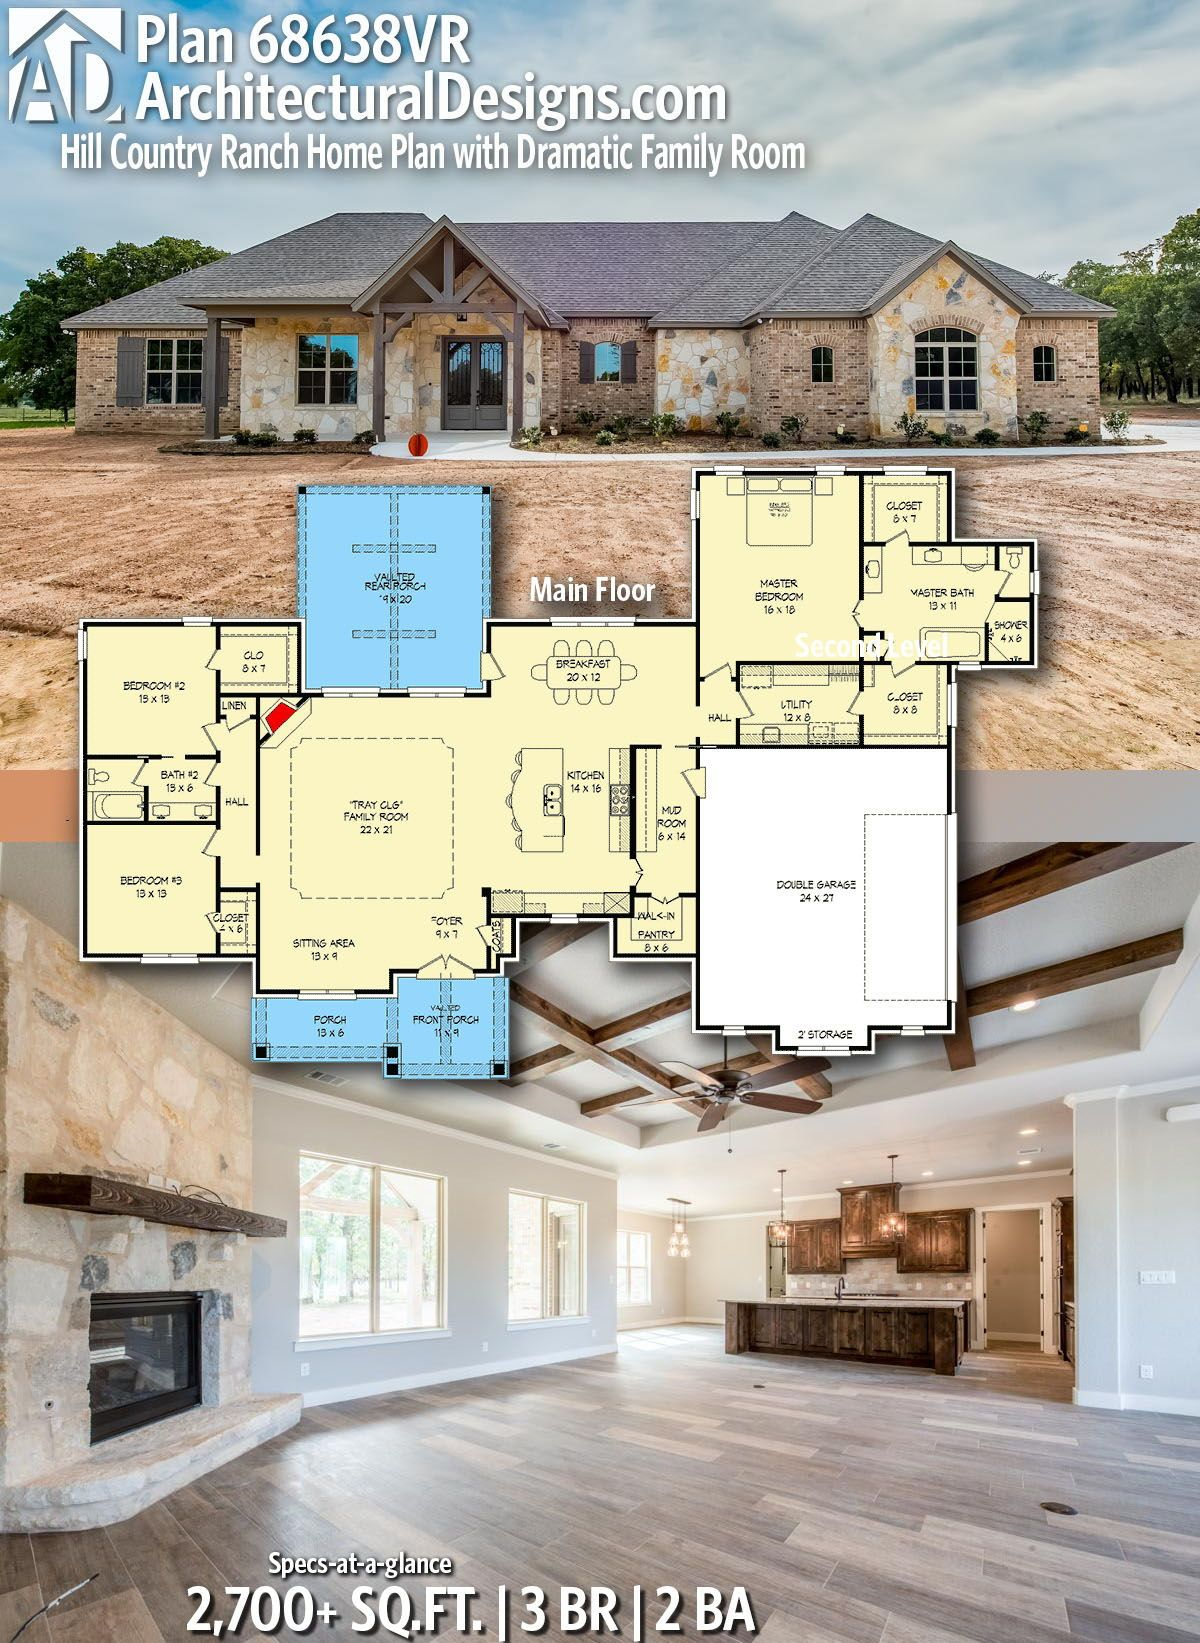 Plan 68638VR: Hill Country Ranch Home Plan with Dramatic Family Room